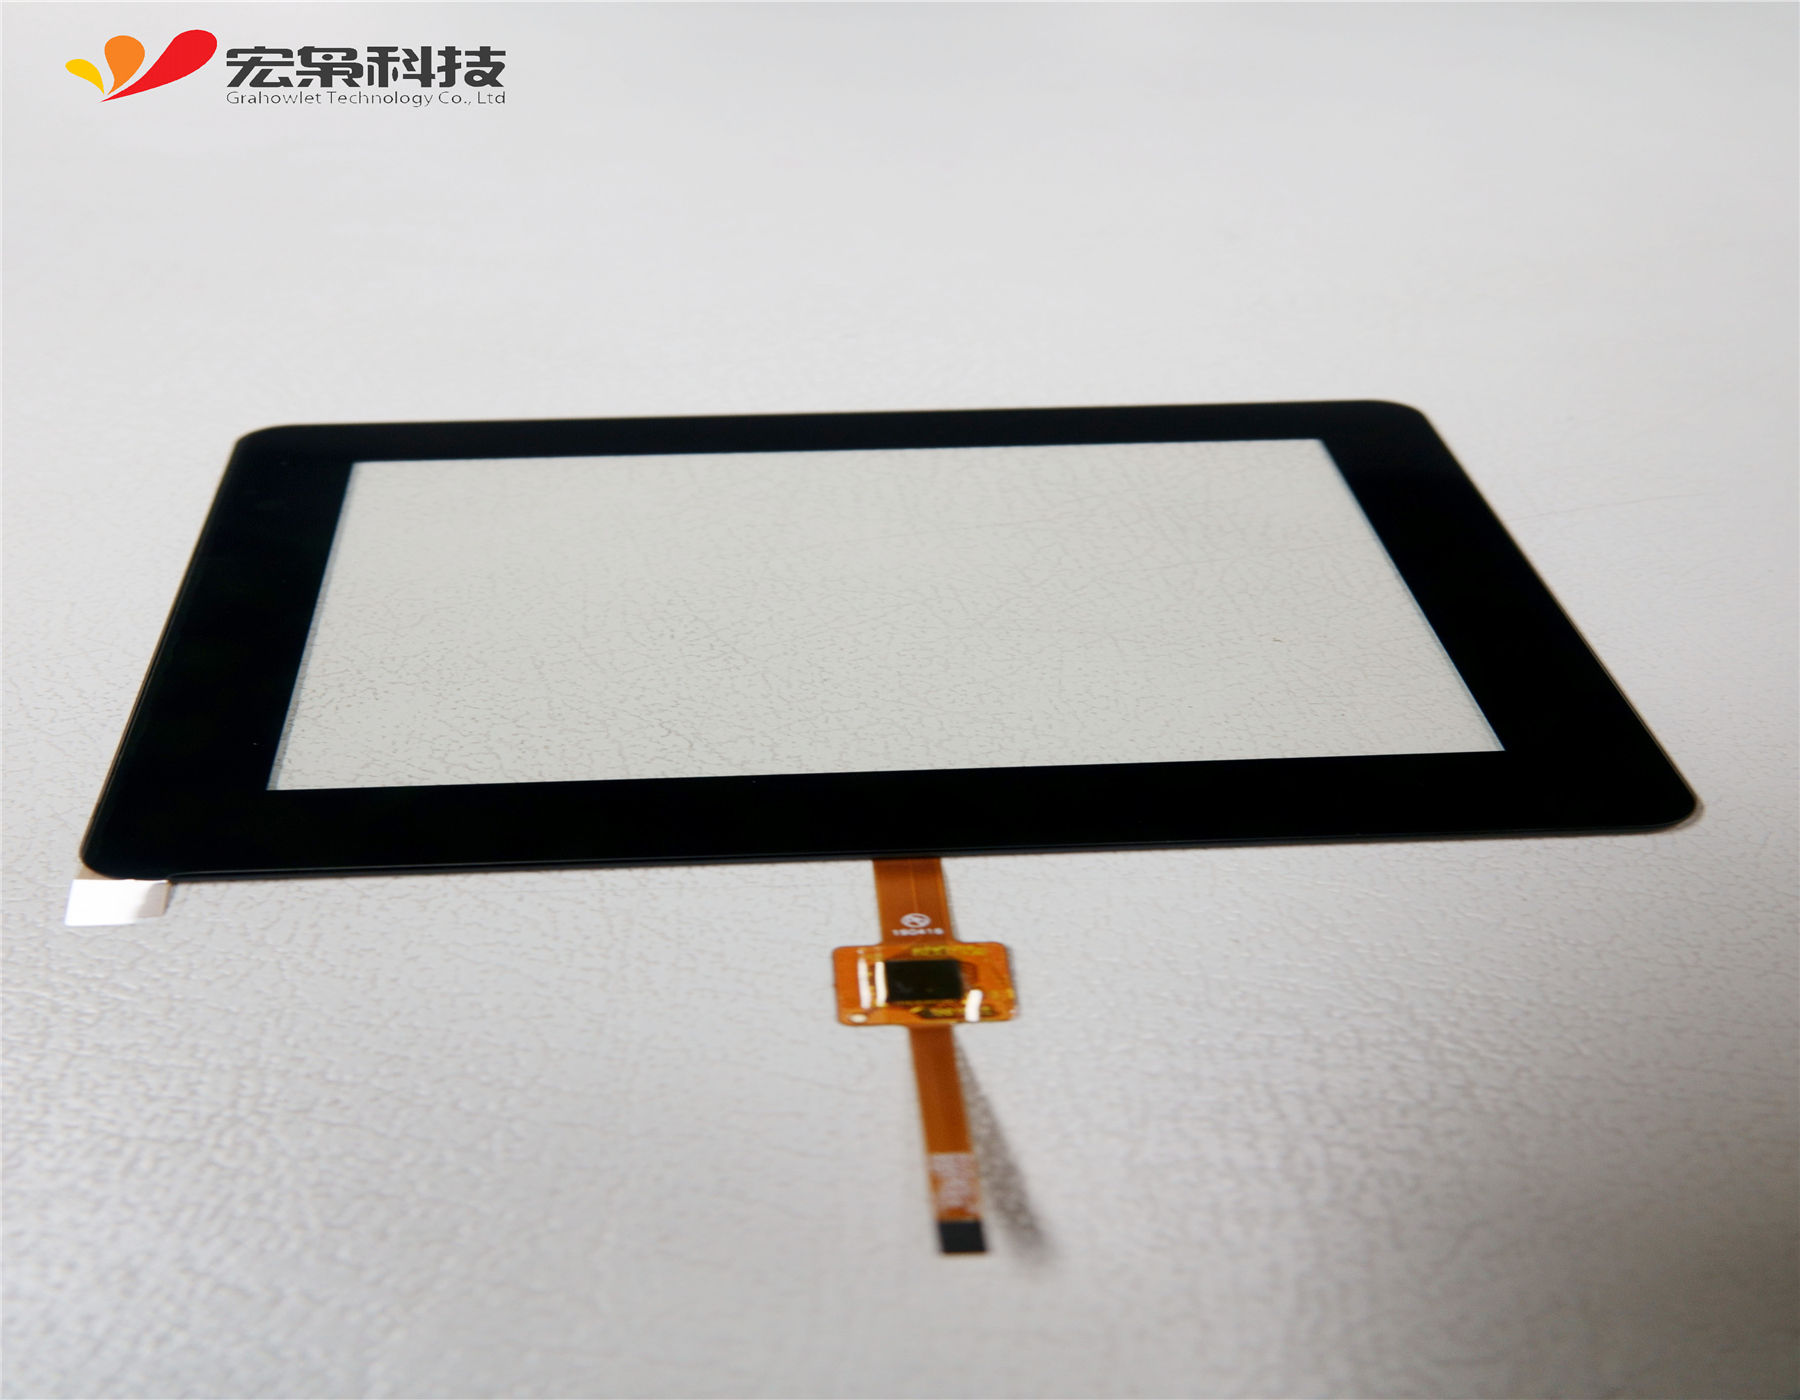 Custom Size 3, 3.2, 4, 4.3, 5, 5.6, 5.7 Inch Touchscreen Smart Touch Panel